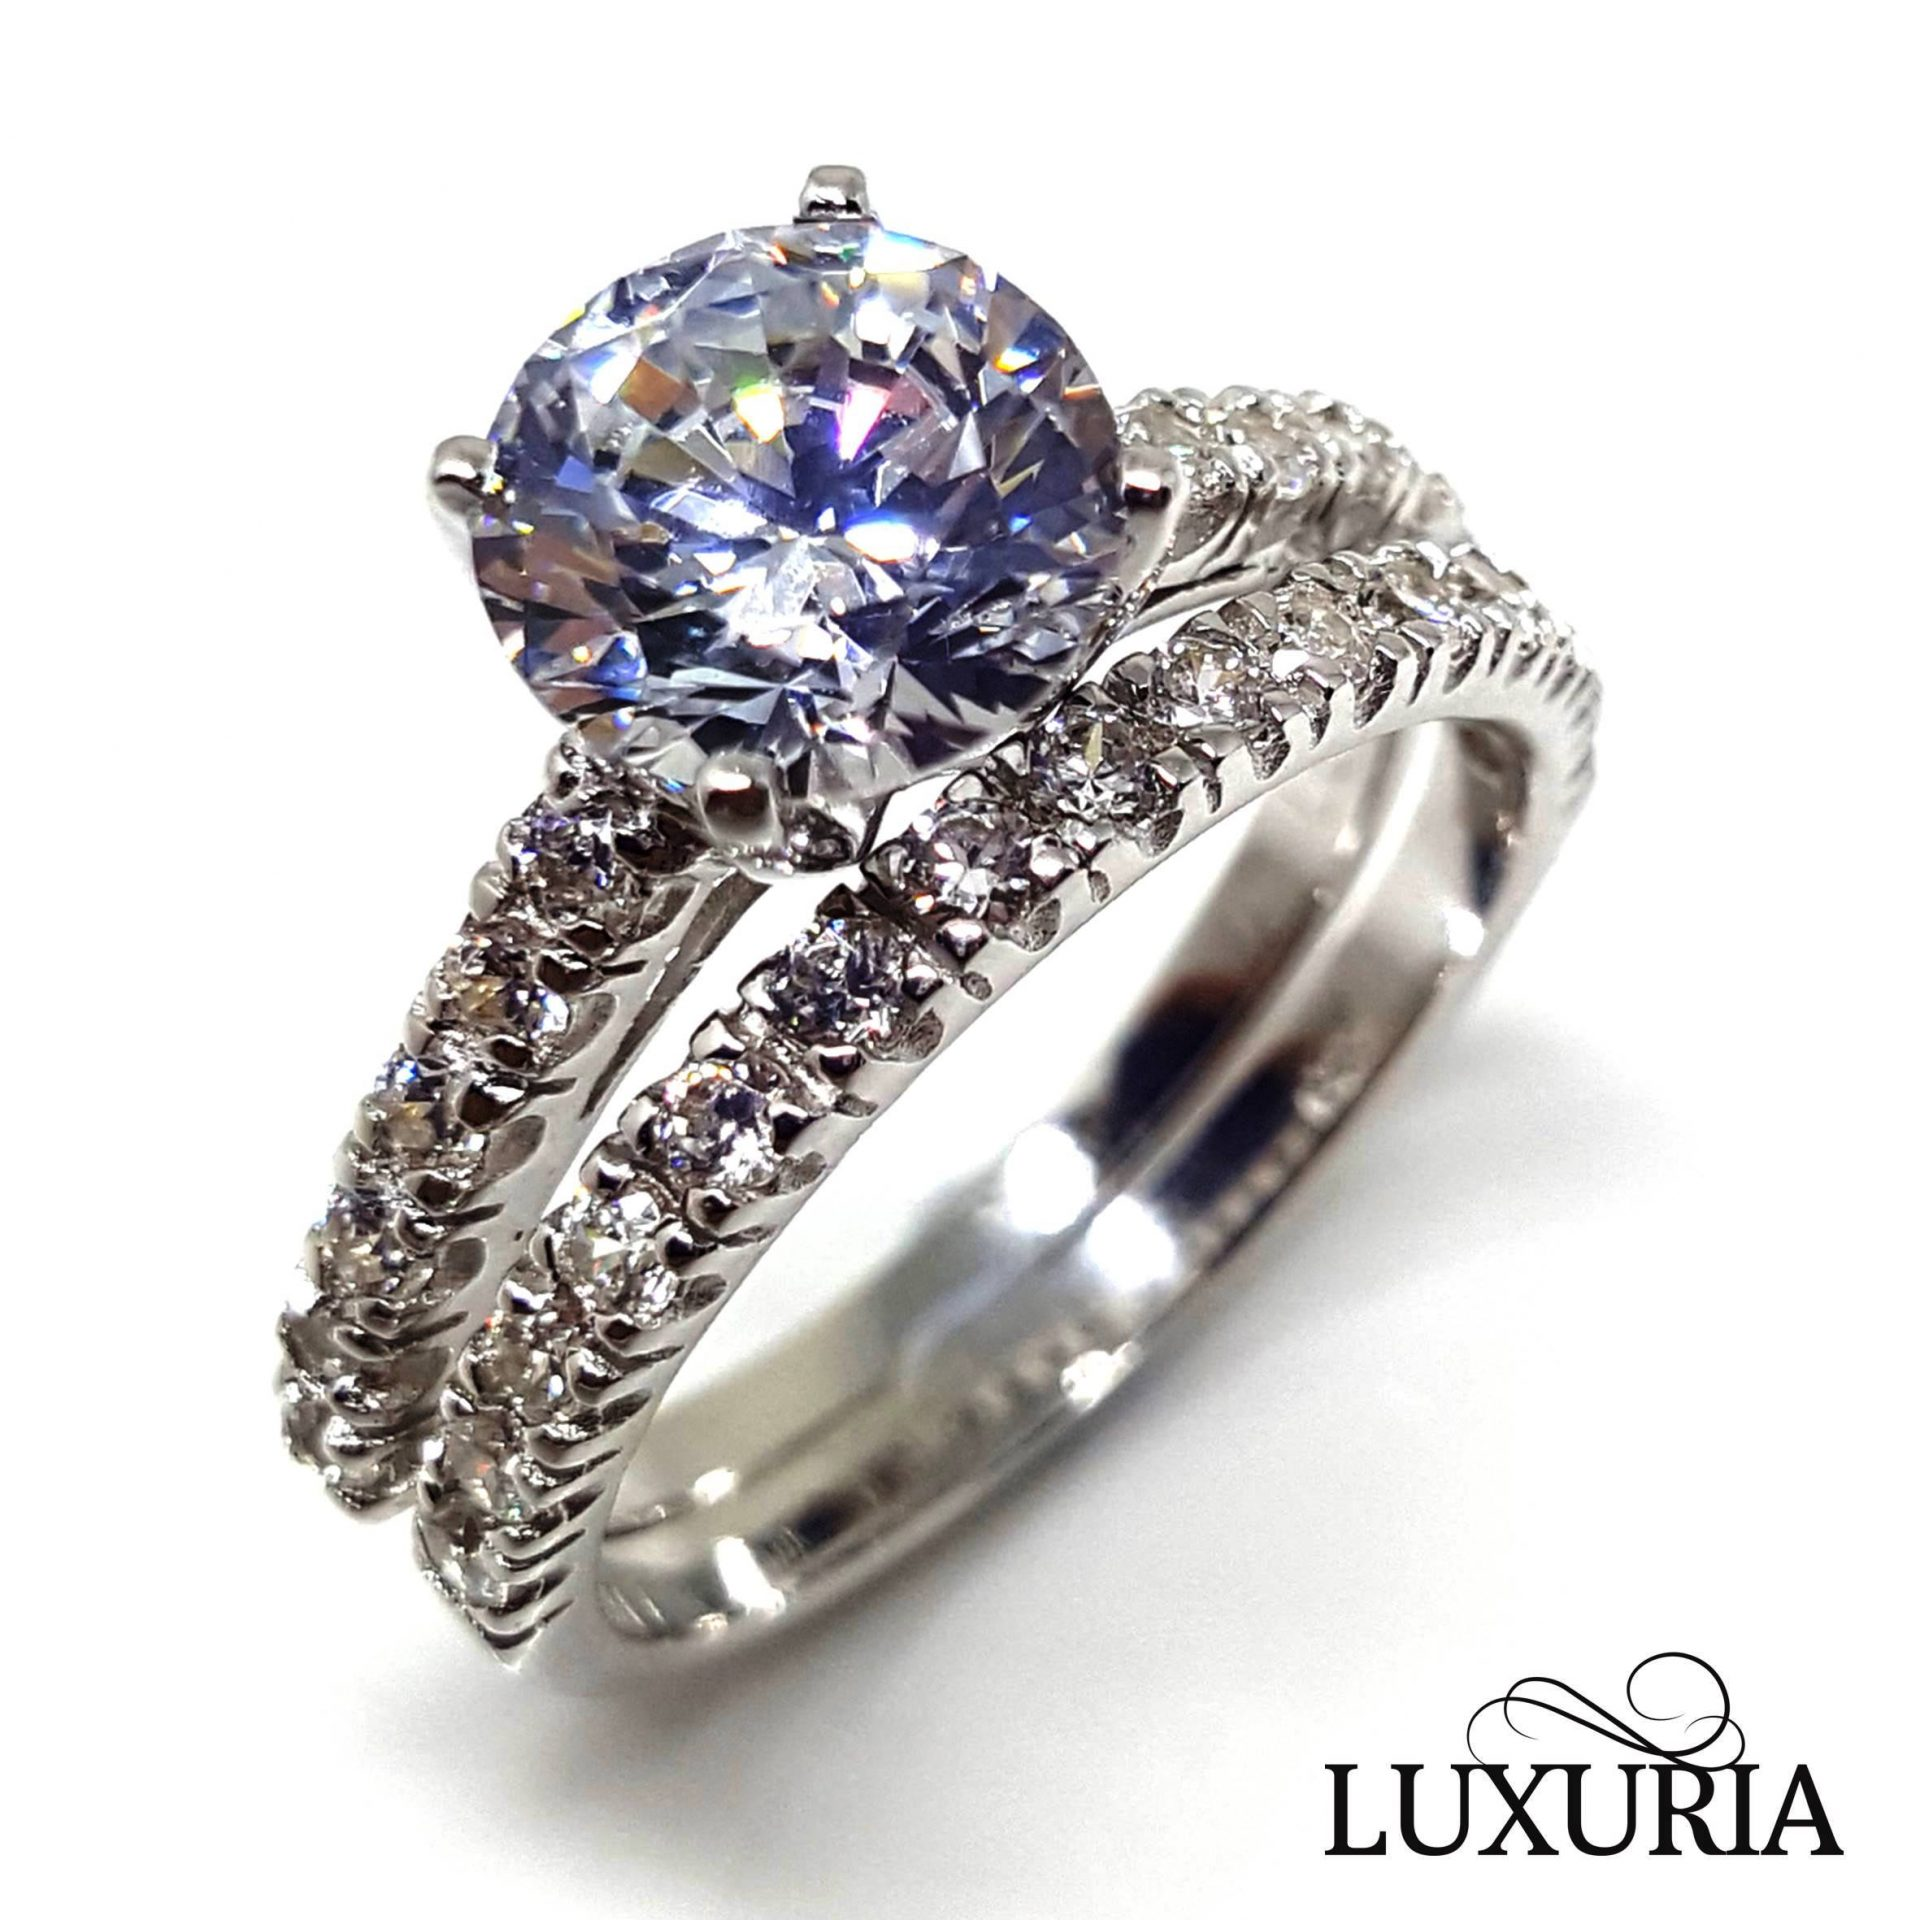 Luxuria D'PROMESSO cubic zirconia engagement rings